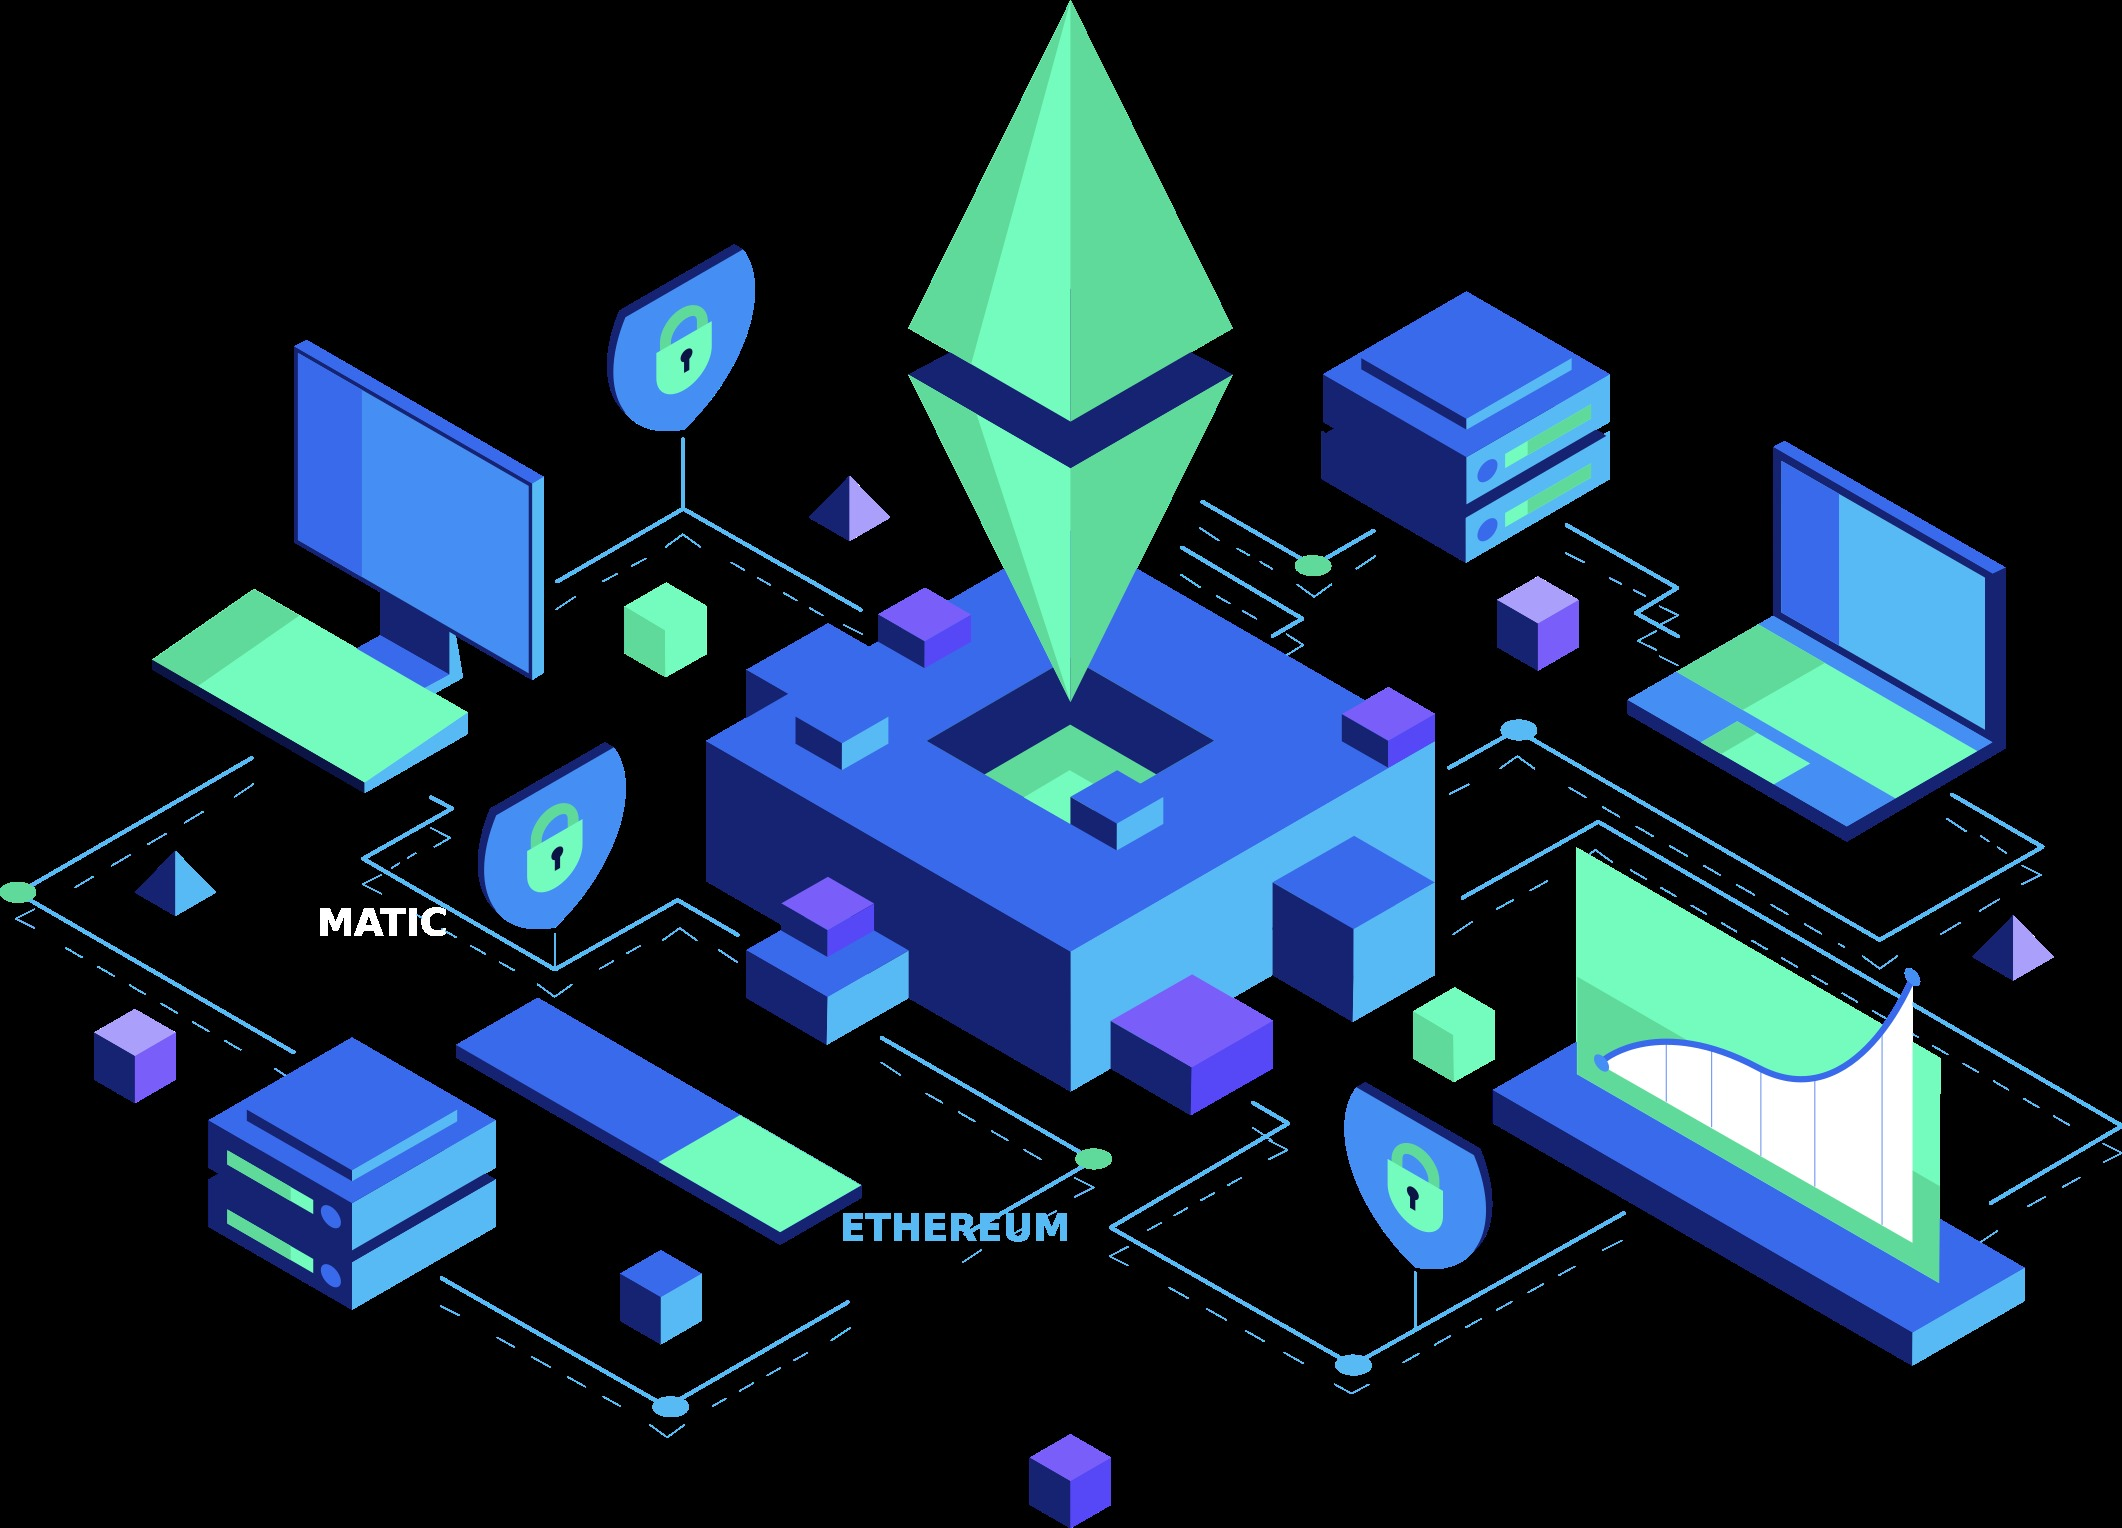 matic network fundamentals, the golden boy of coinbase and binance